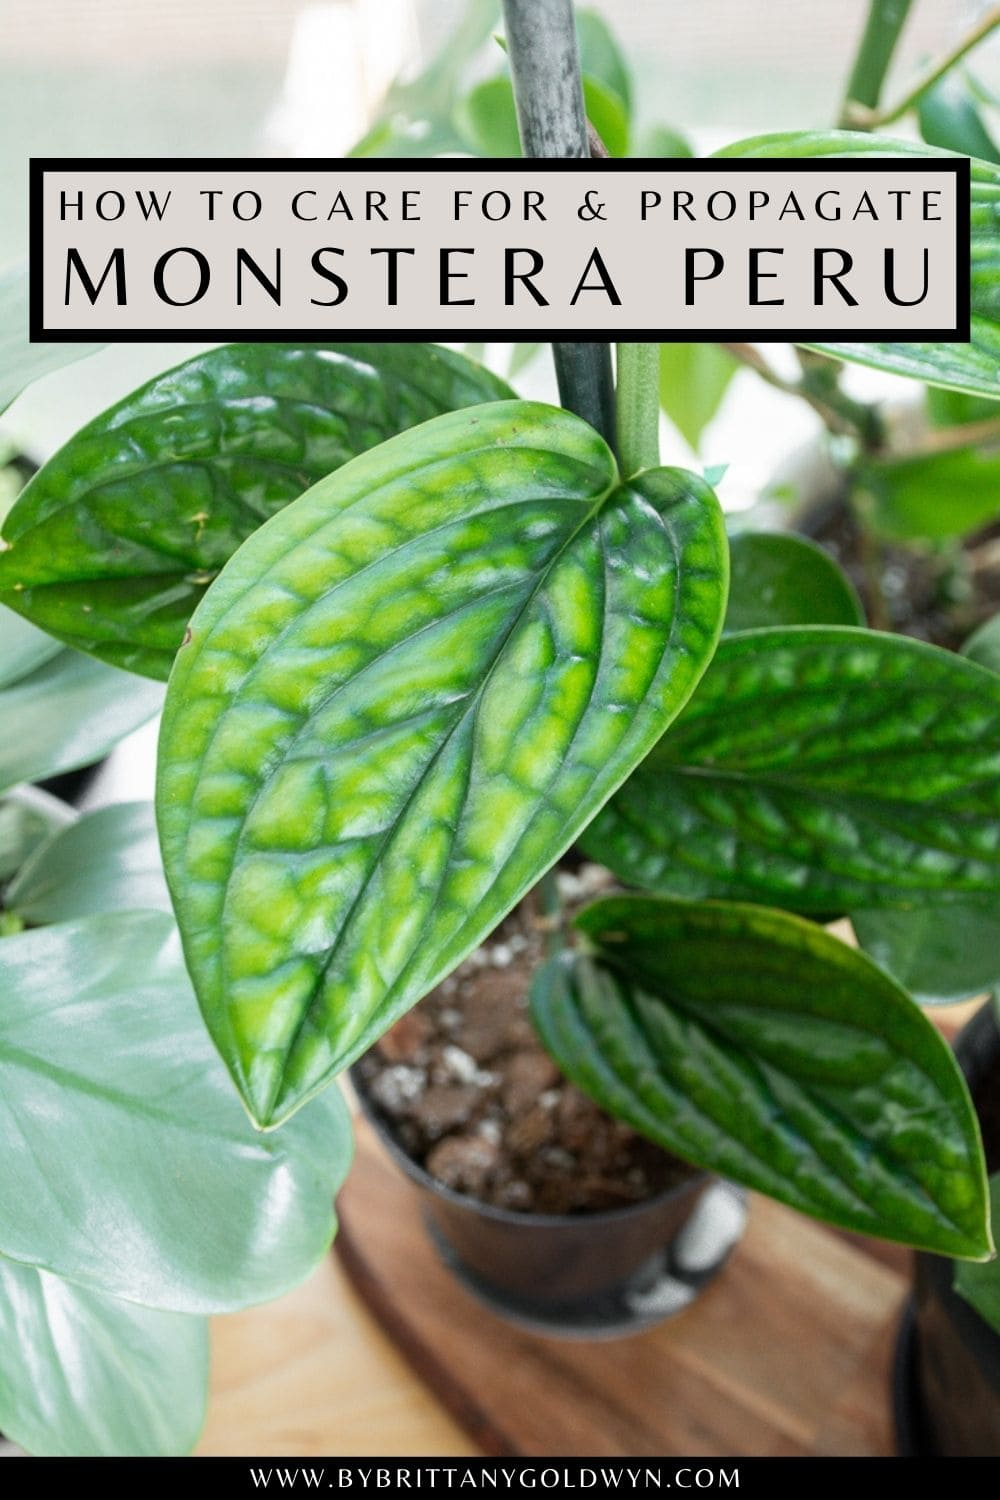 pinnable graphic with photos of a Monstera Peru and text about how to care for a propagate it